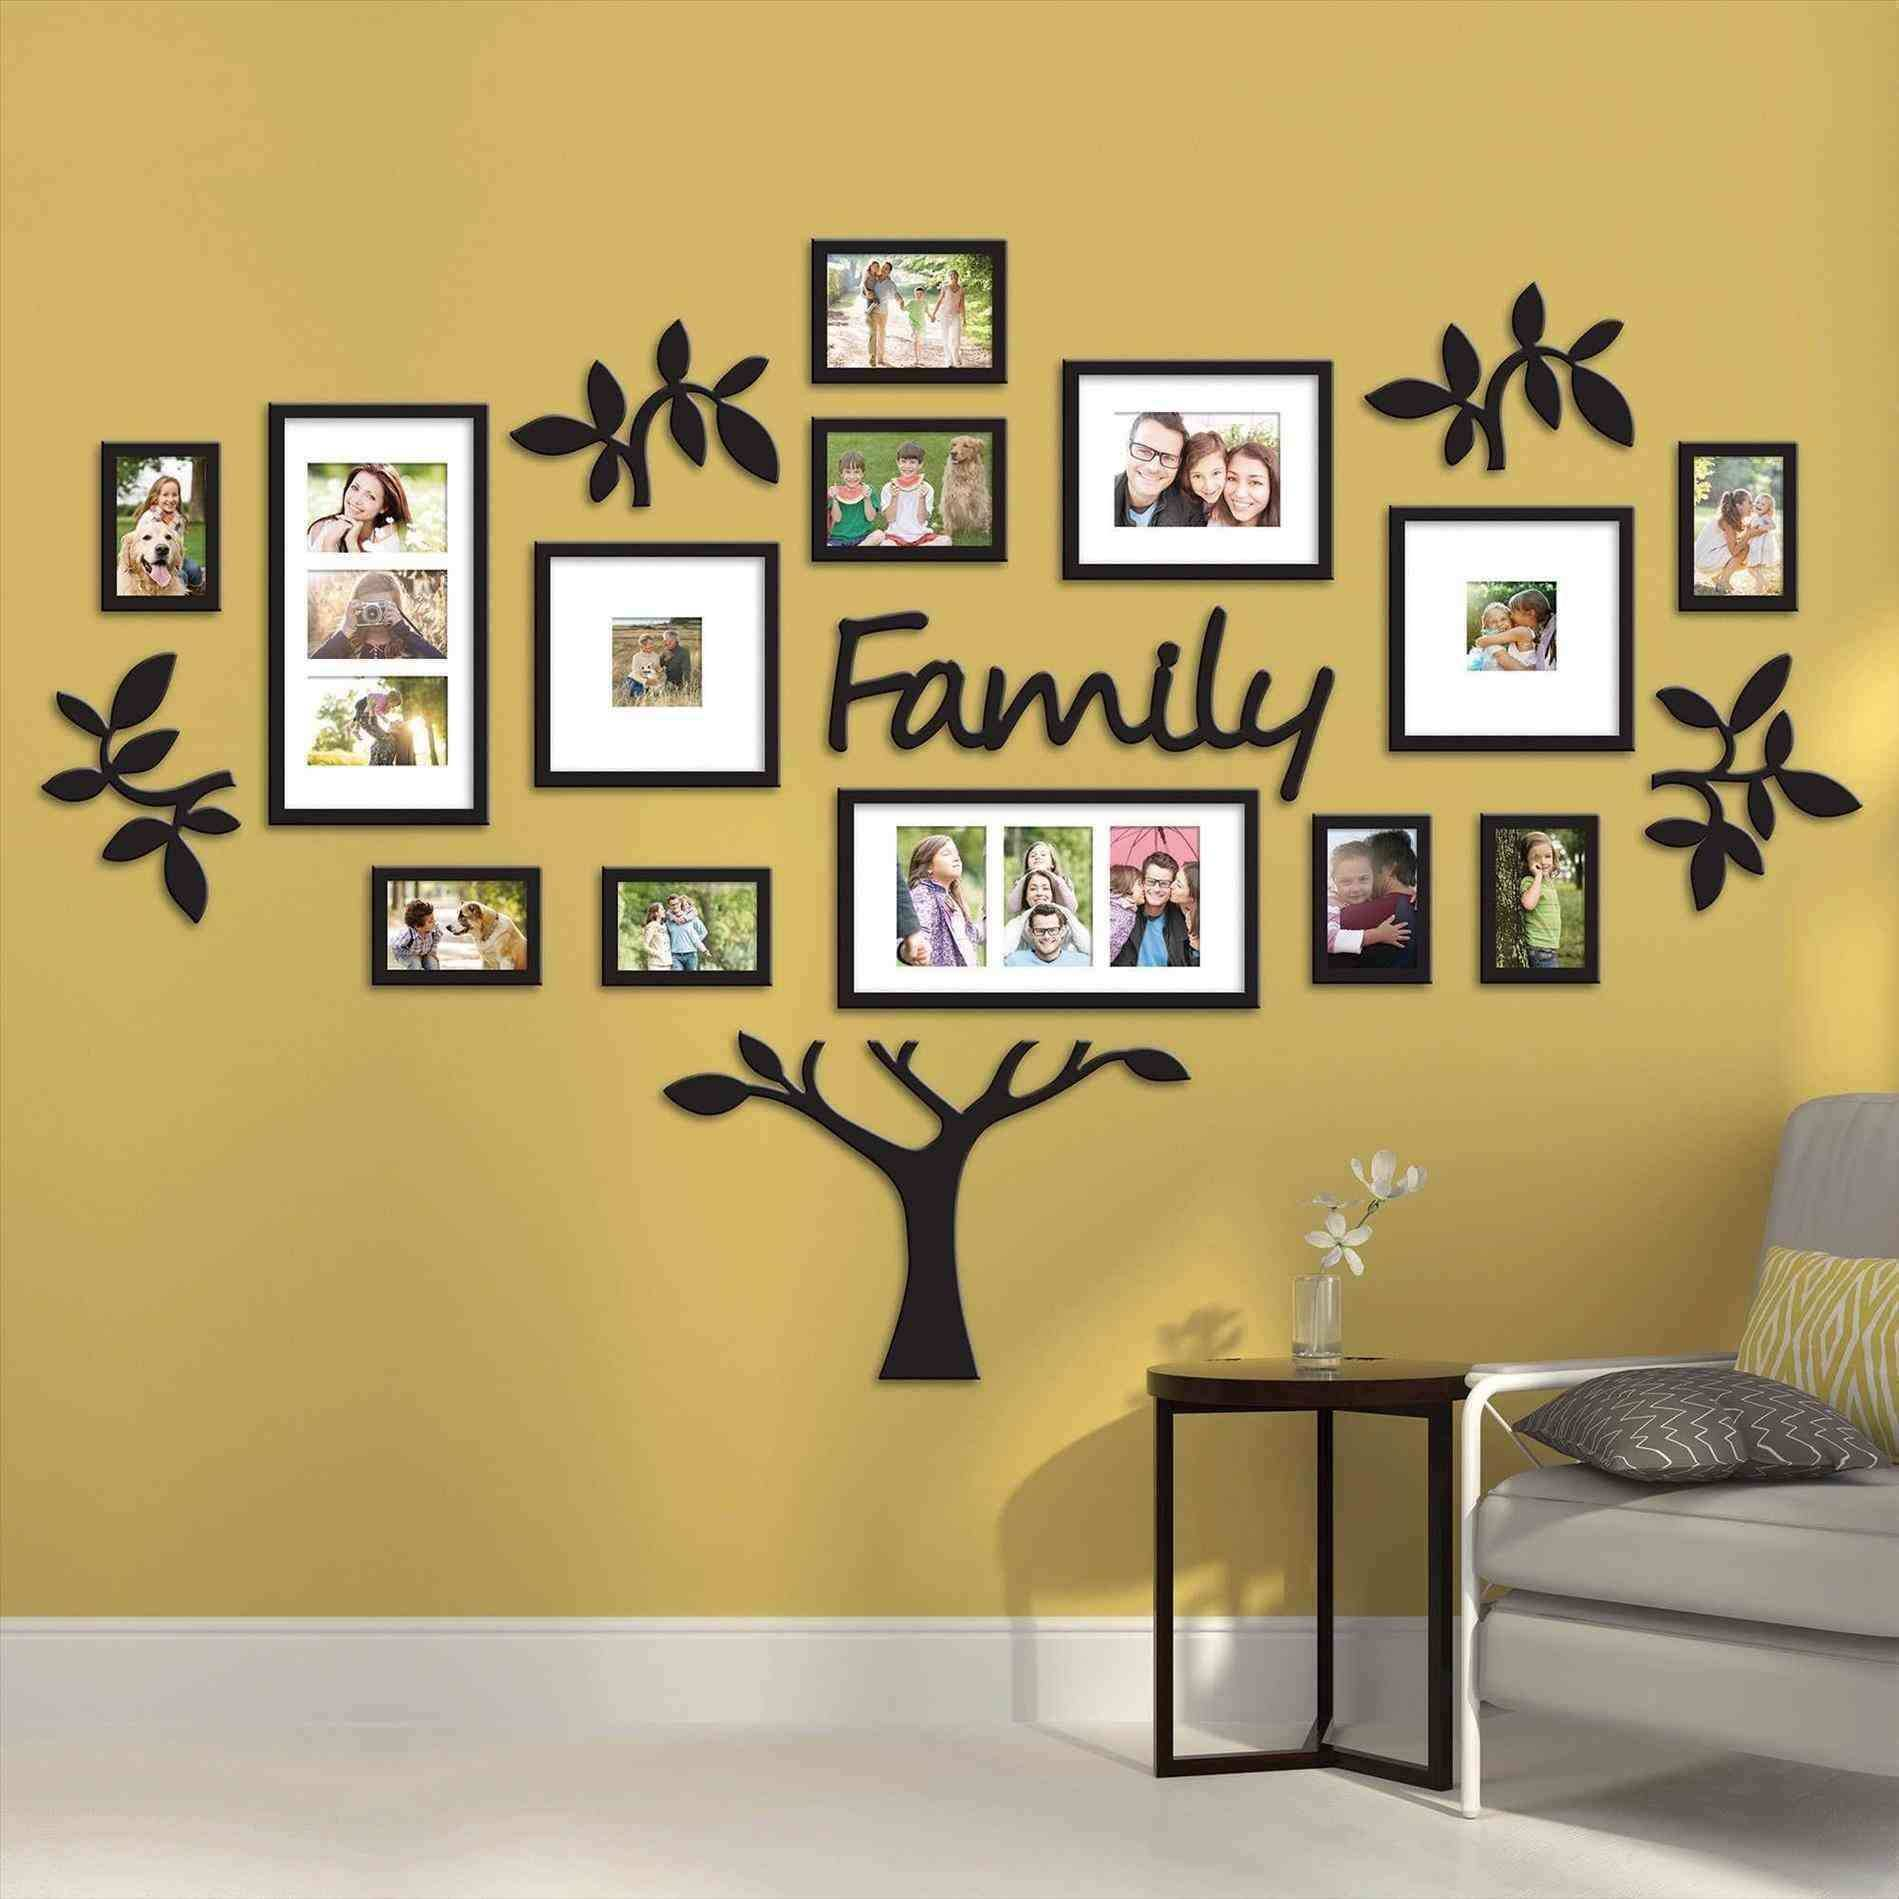 Target Wall Picture Frames Best Of Family Tree Wall Decor with ...